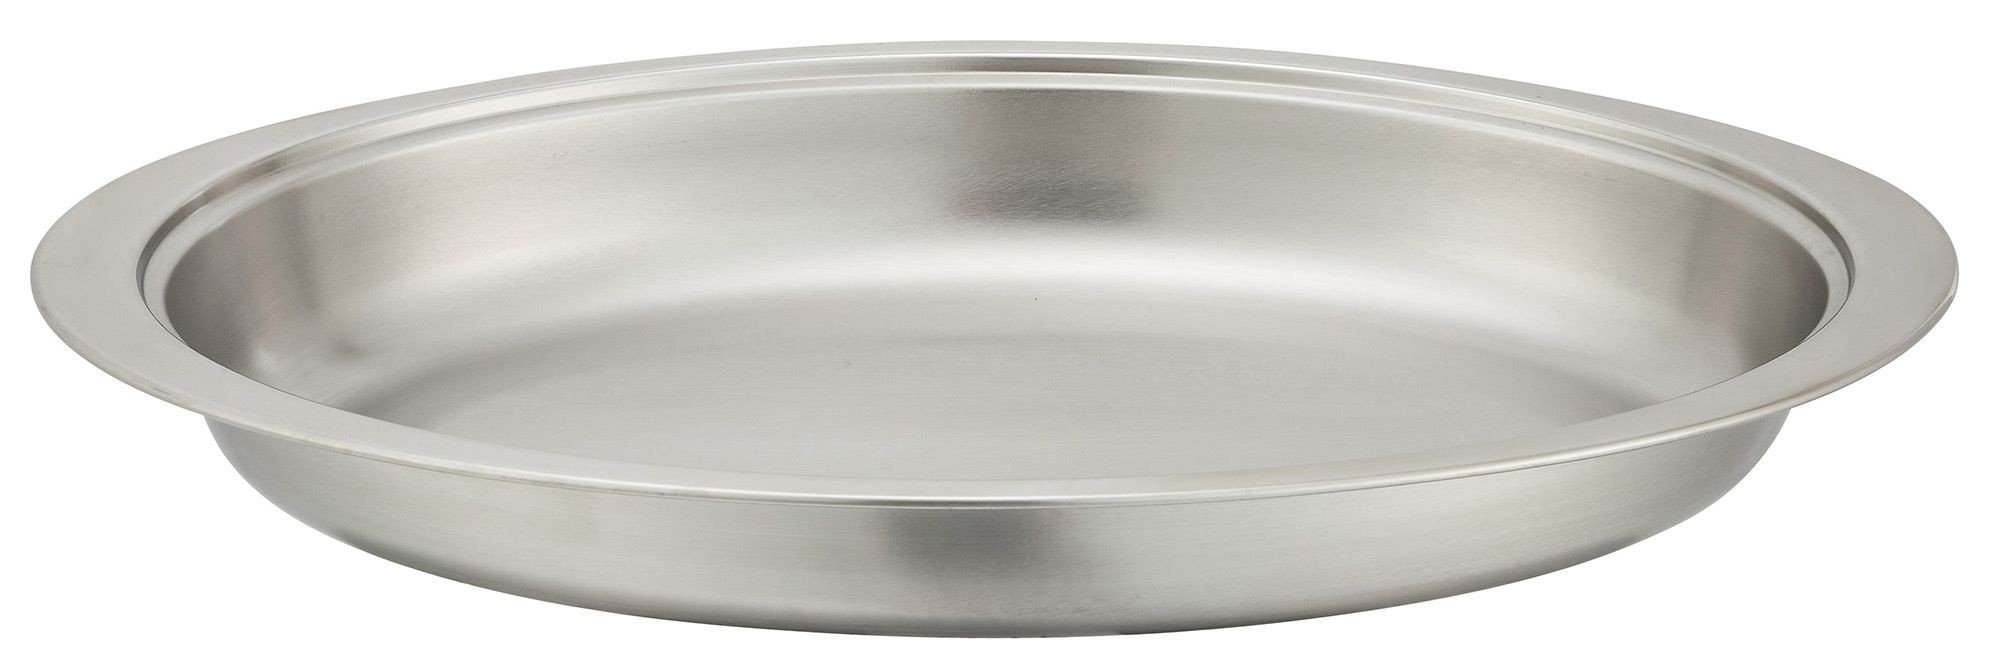 Winco 202-FP Food Pan for 6 Qt. Gold-Accented Malibu Oval Chafer 202